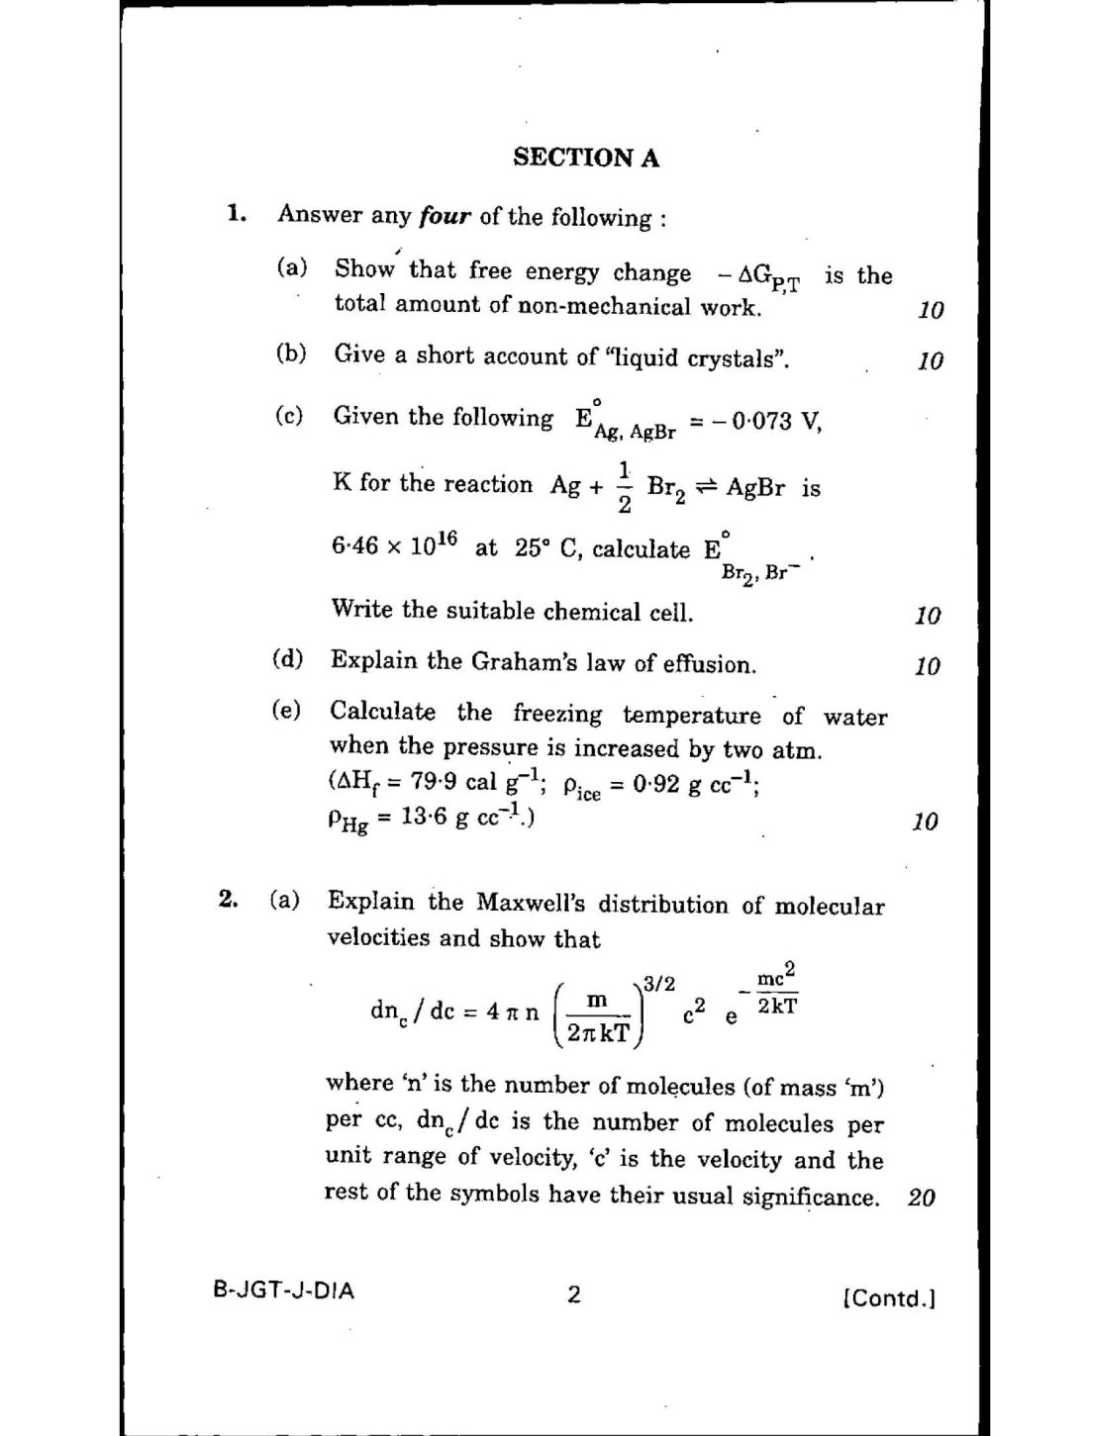 basic chemistry essay questions Chemistry exams are notoriously difficult make sure you're ready for the test with our free chemistry practice test questions no registration necessary.